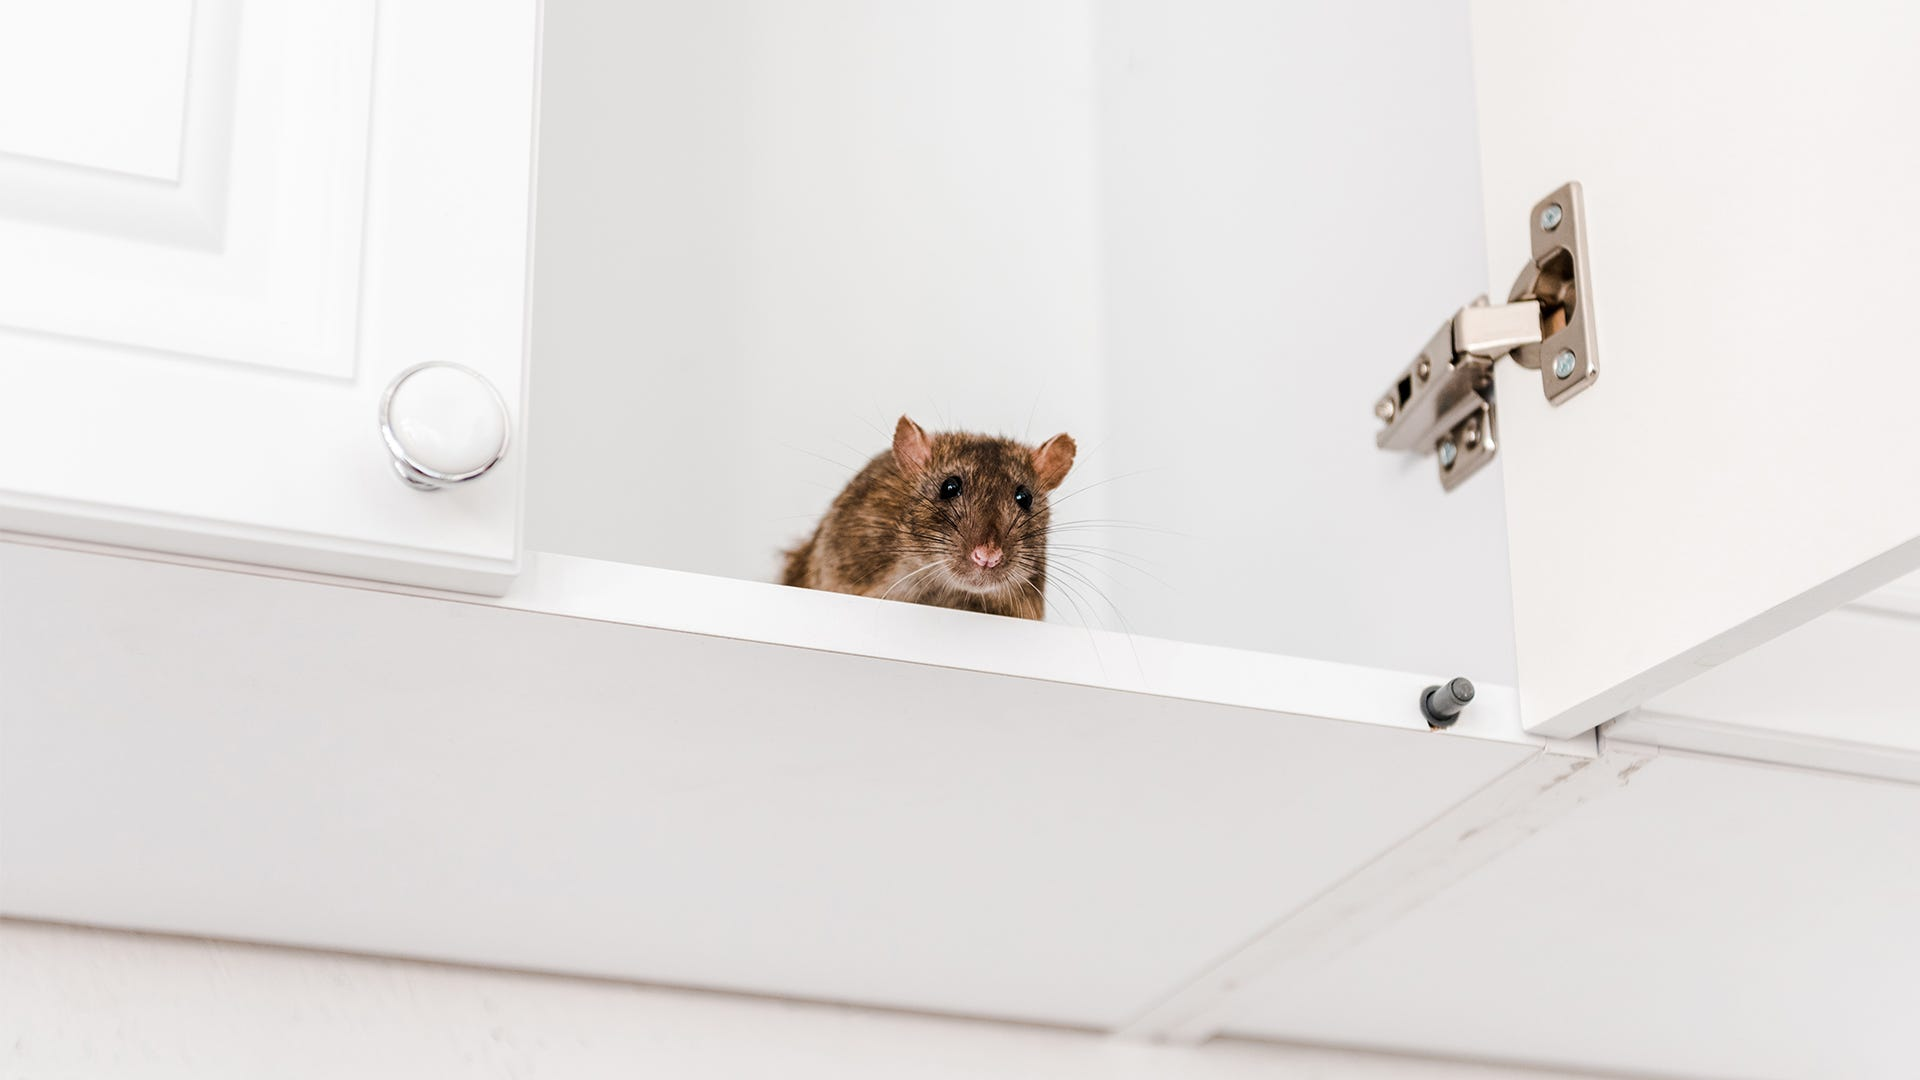 DIY Pest Control - Ban Rodents from Your Home